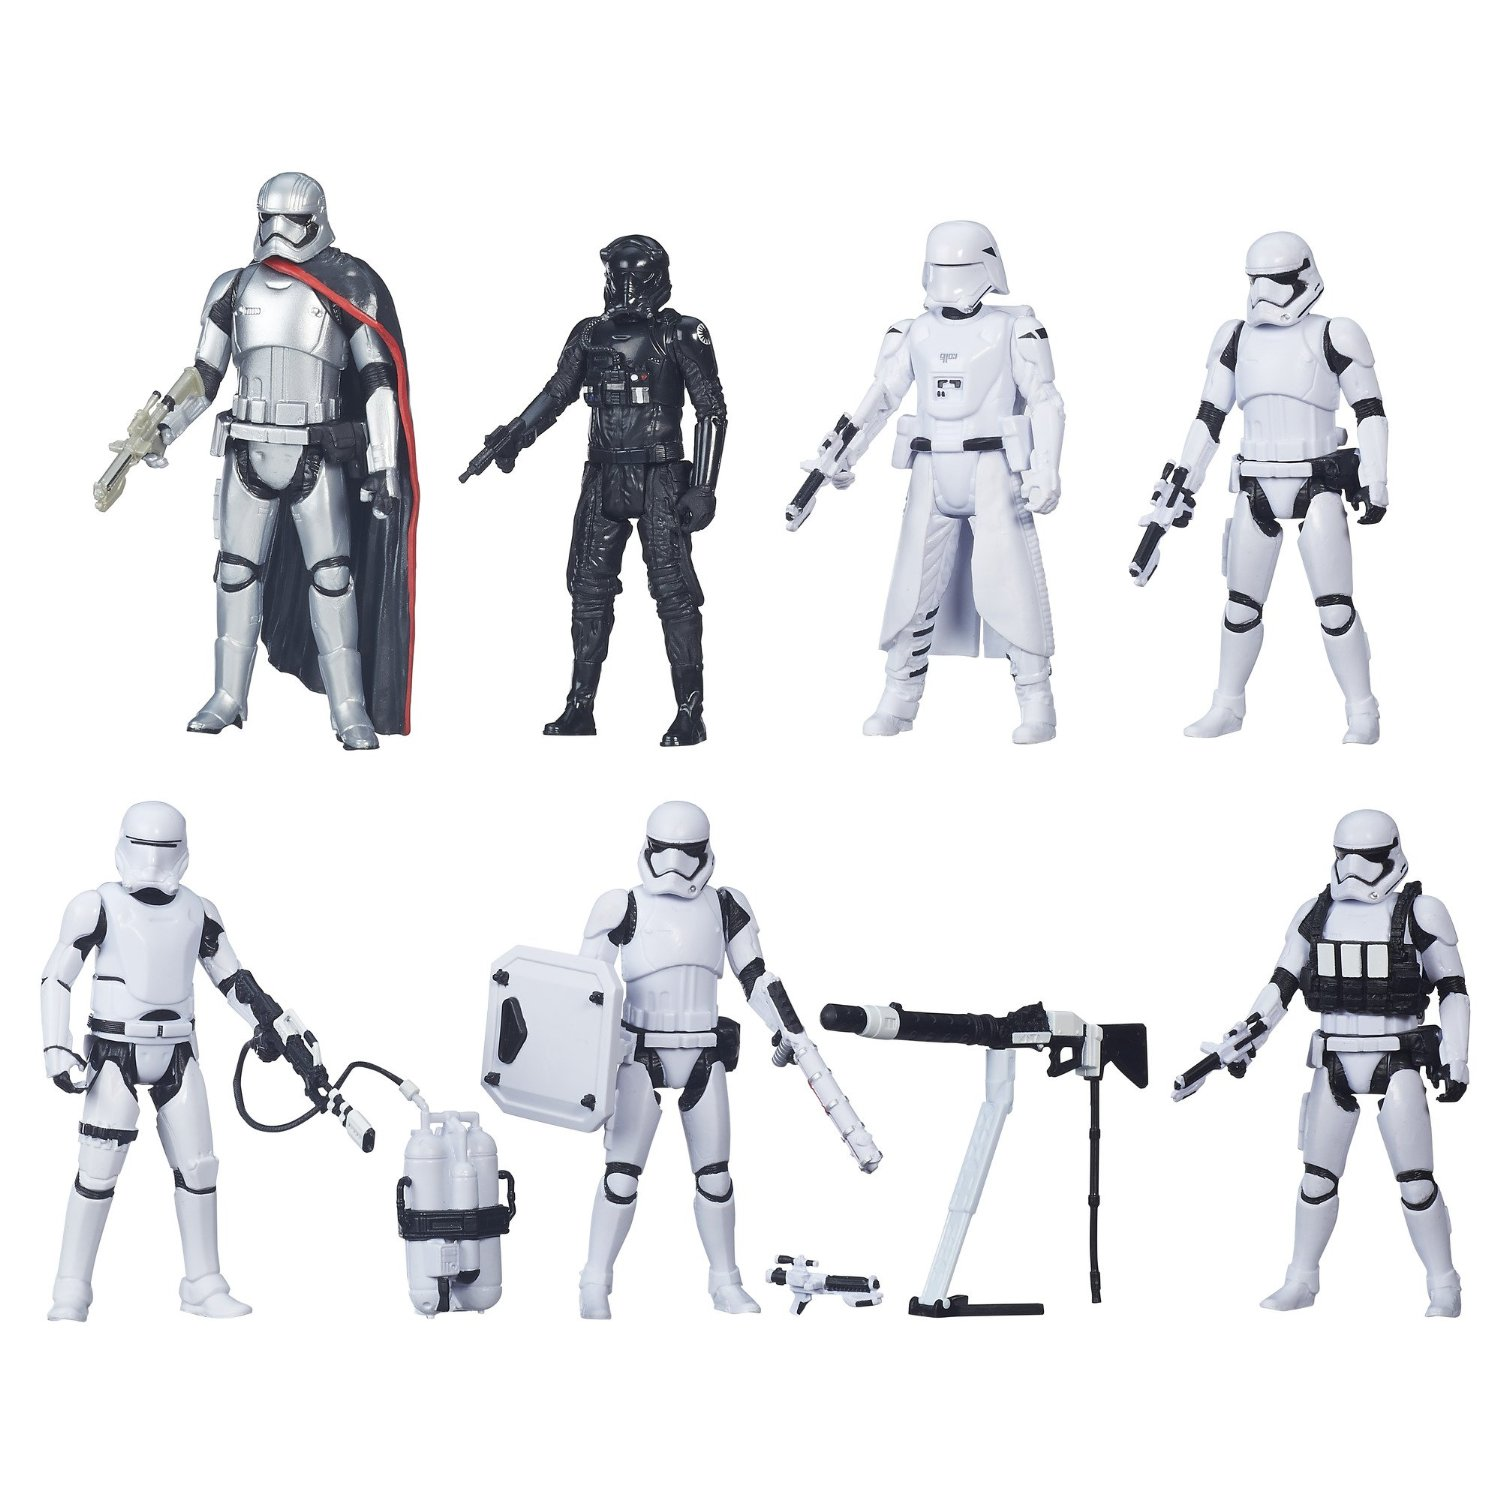 Occasion/Soldes  Figurine Star Wars  Priceminister, Fnac, Amazon